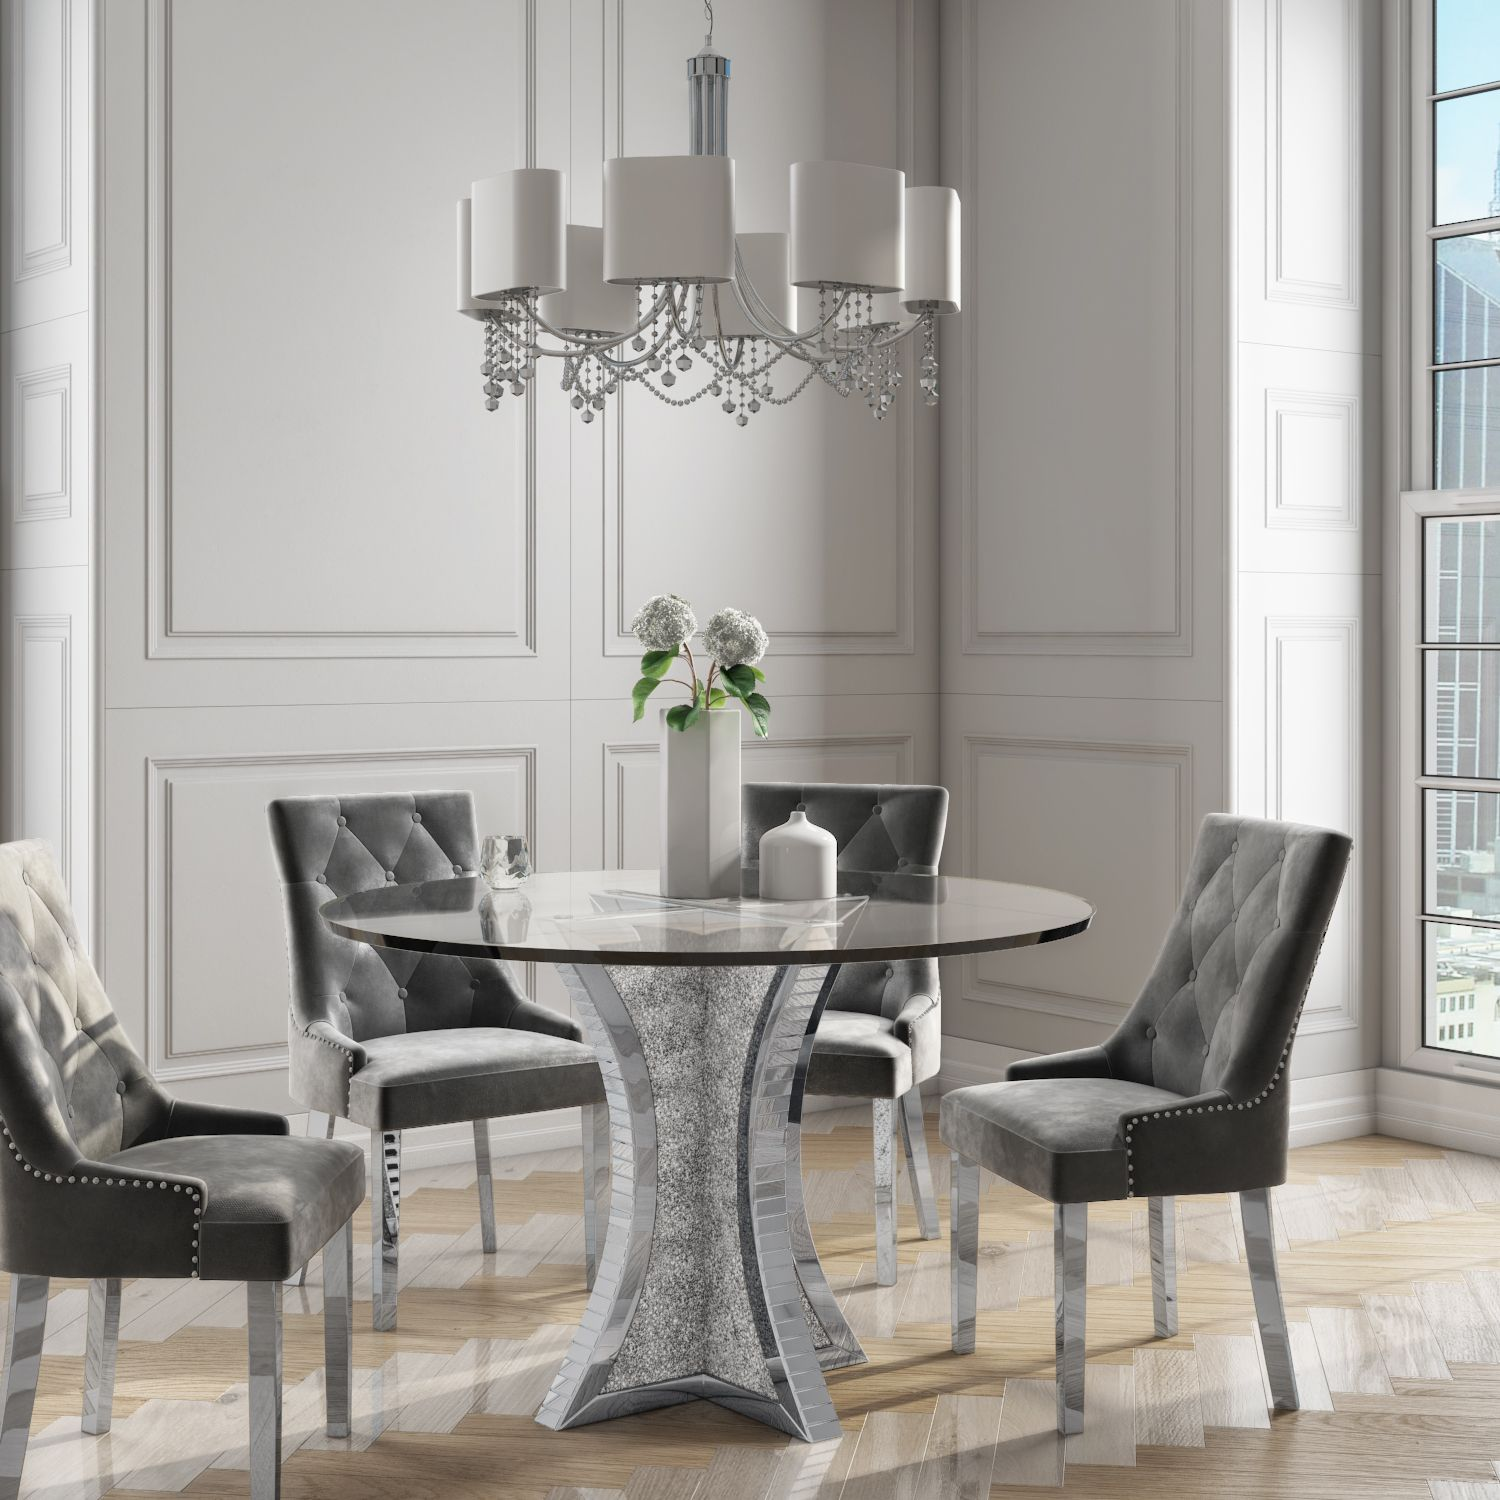 Luxury Mirrored Glass Dining Table With 4 Grey Velvet Dining Chairs Set Dining Room Furniture Dining Table Glass Dining Table